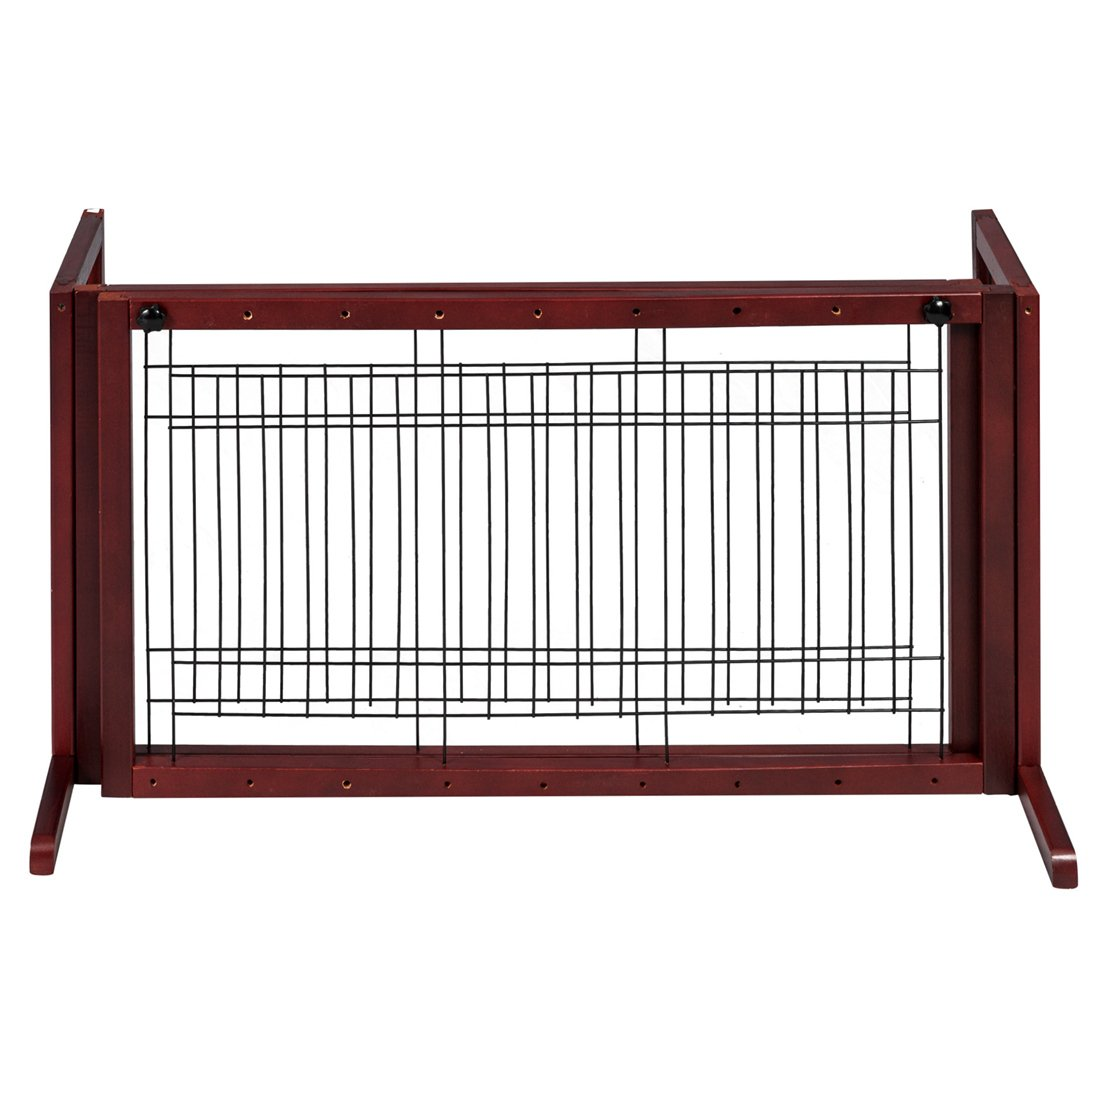 GOOD LIFE Wooden Fence Freestanding Pet Dog Gate Indoor Adjustable Gates for Home Coffee Color 72 Inch PET344 by GOOD LIFE USA (Image #2)